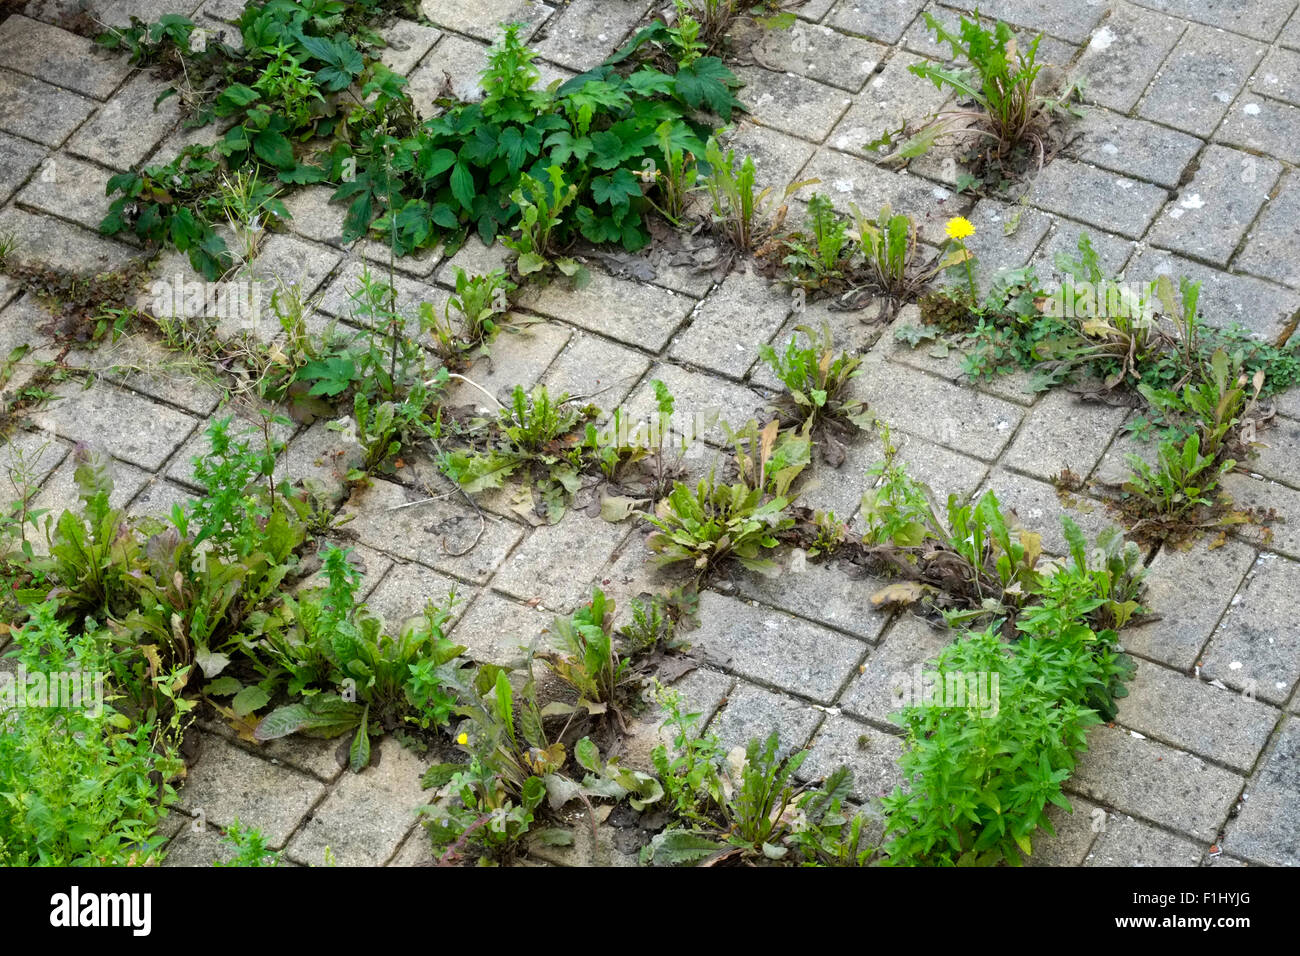 Forum on this topic: How to Grow Grass Between Pavers, how-to-grow-grass-between-pavers/